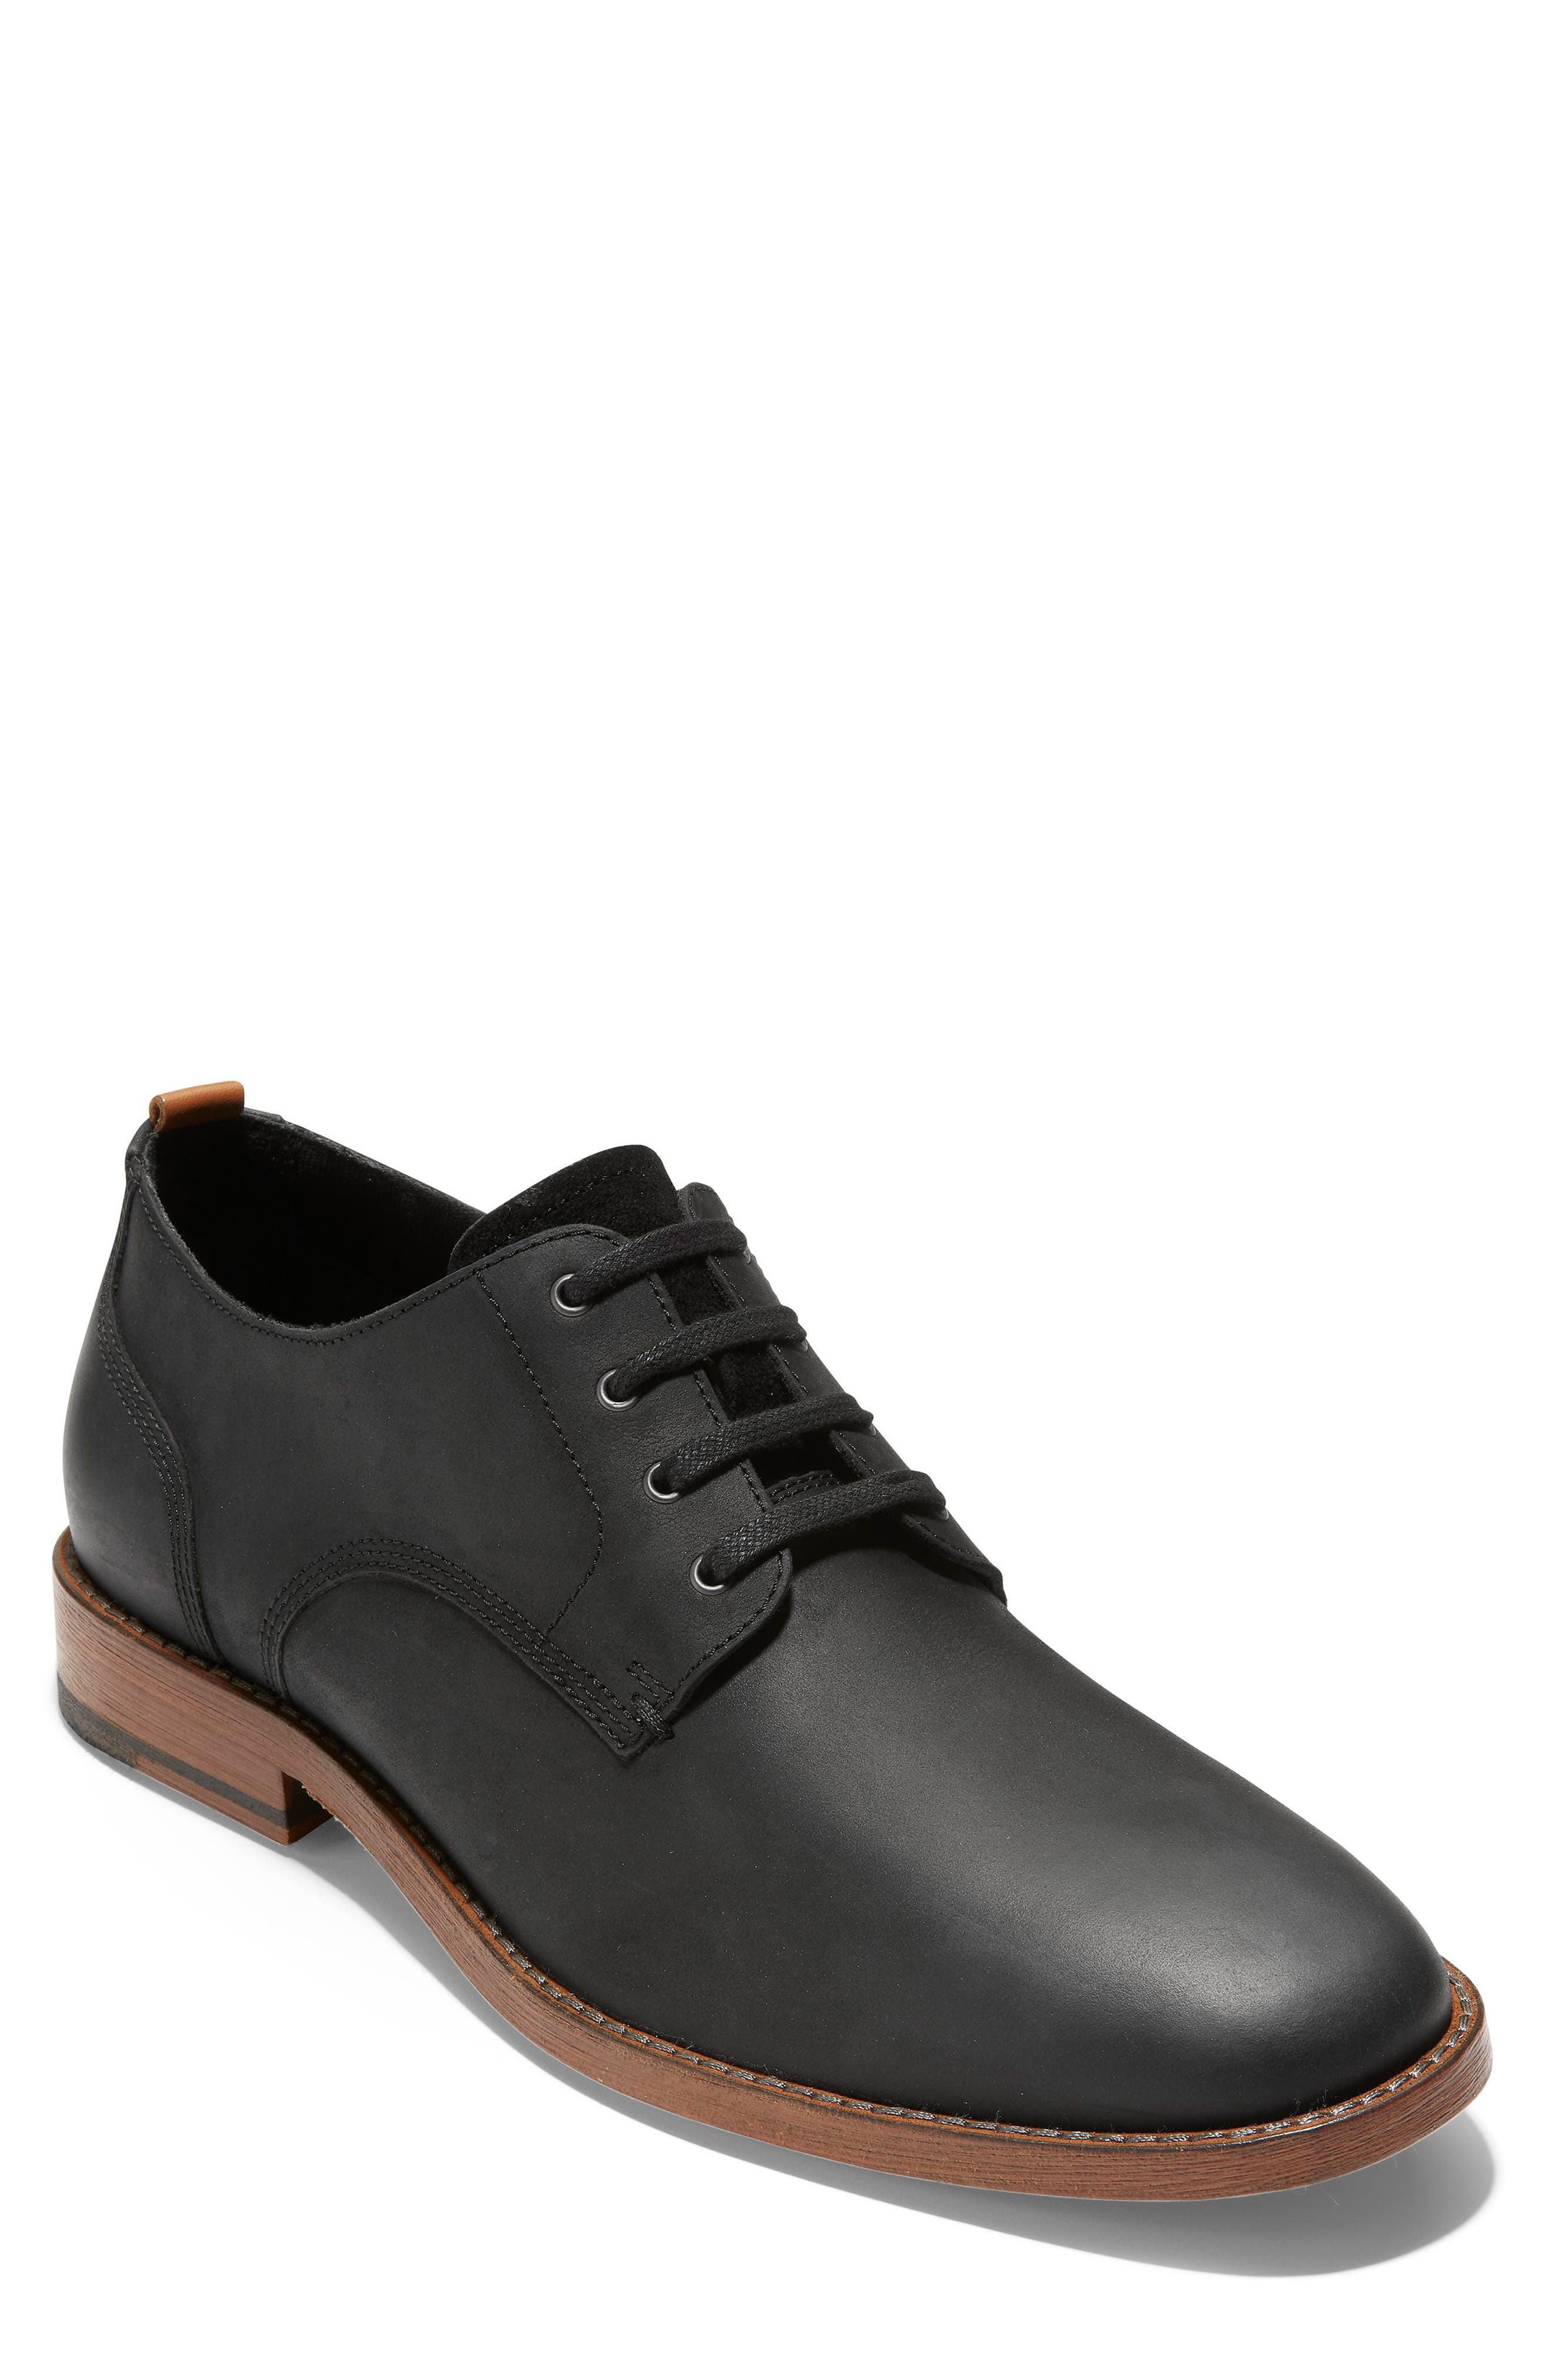 COLE HAAN, Feathercraft Grand Derby, Main thumbnail 1, color, BLACK LEATHER